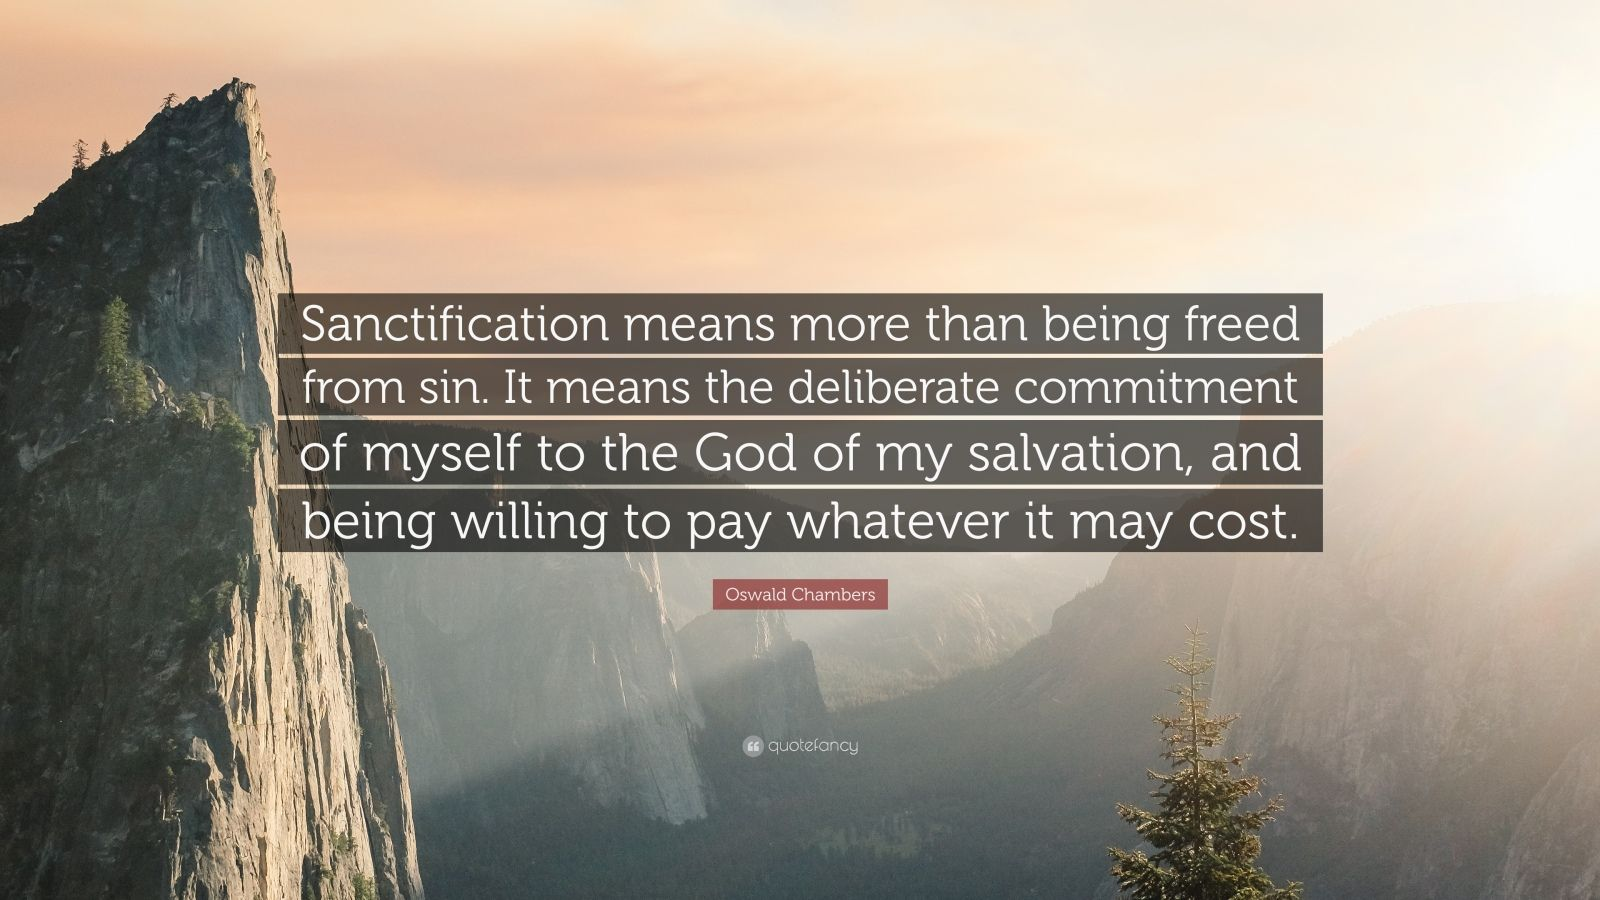 """Oswald Chambers Quote: """"Sanctification means more than being freed from sin. It means the deliberate commitment of myself to the God of my salvation, and being willing to pay whatever it may cost."""""""